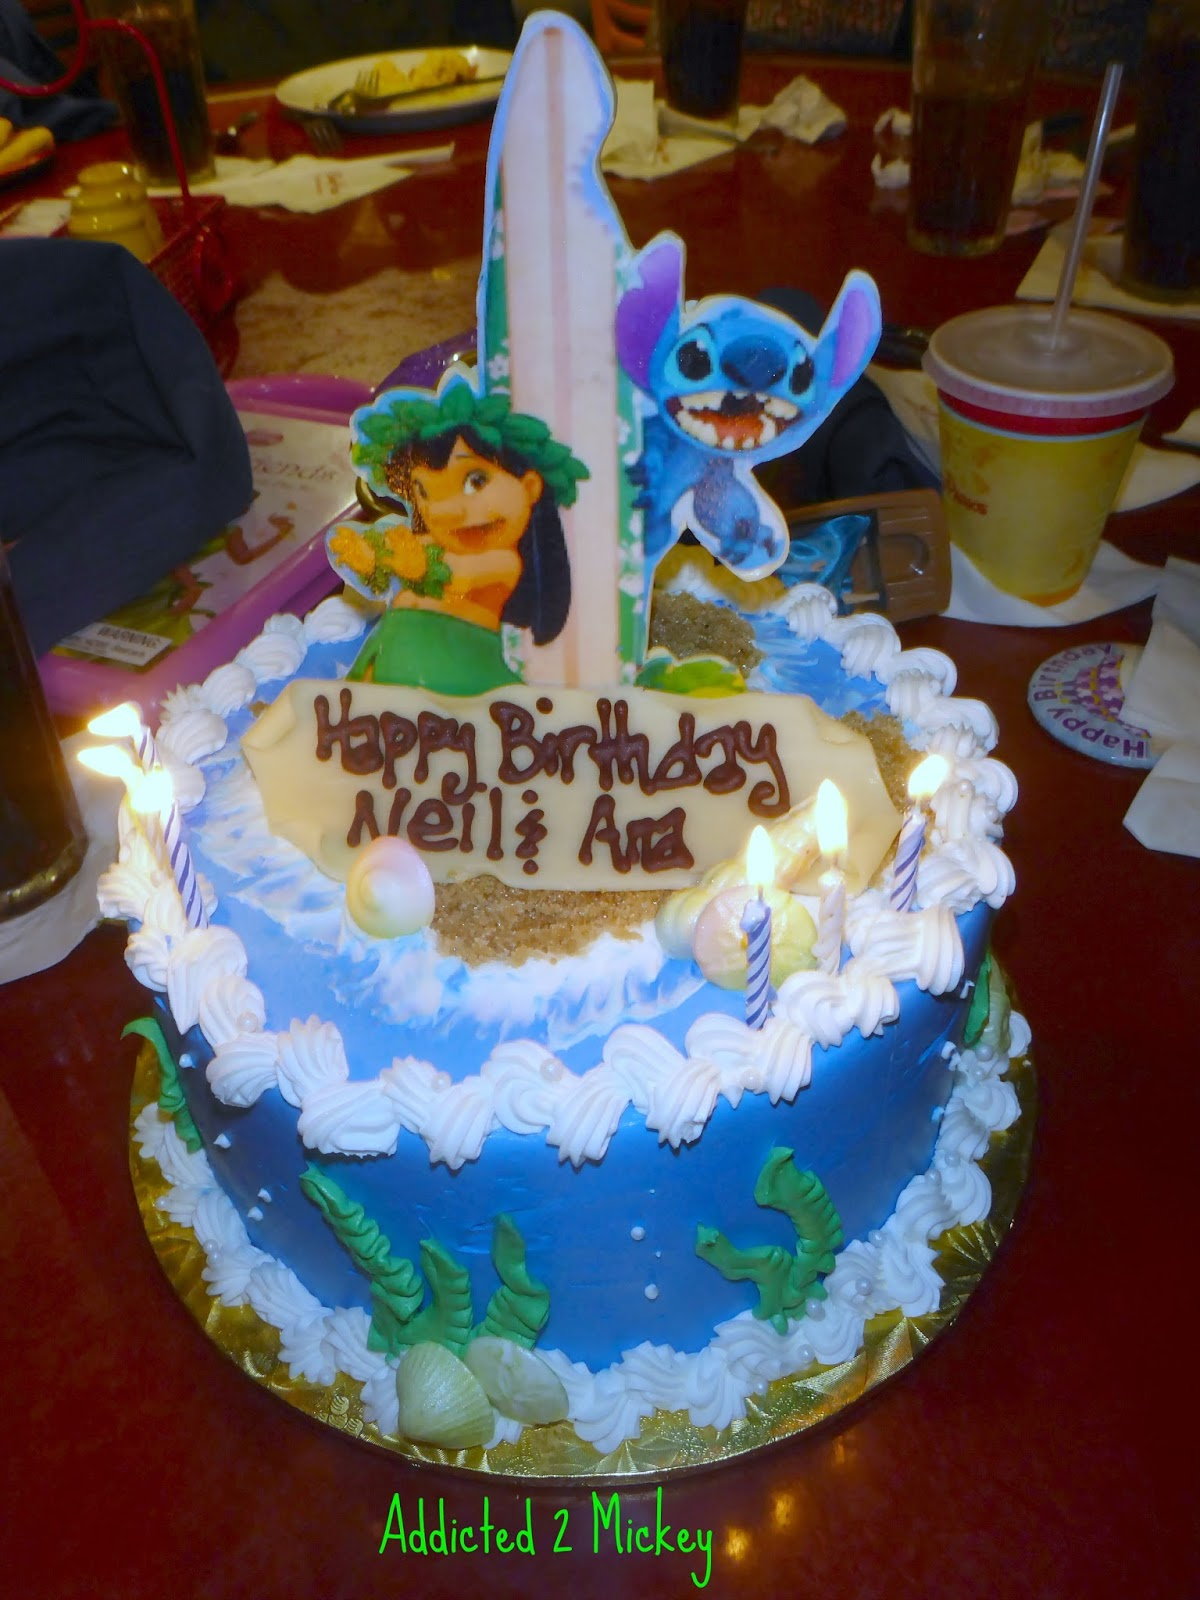 Addicted 2 Mickey: Foodie Friday: Specialty Cakes at Walt Disney World